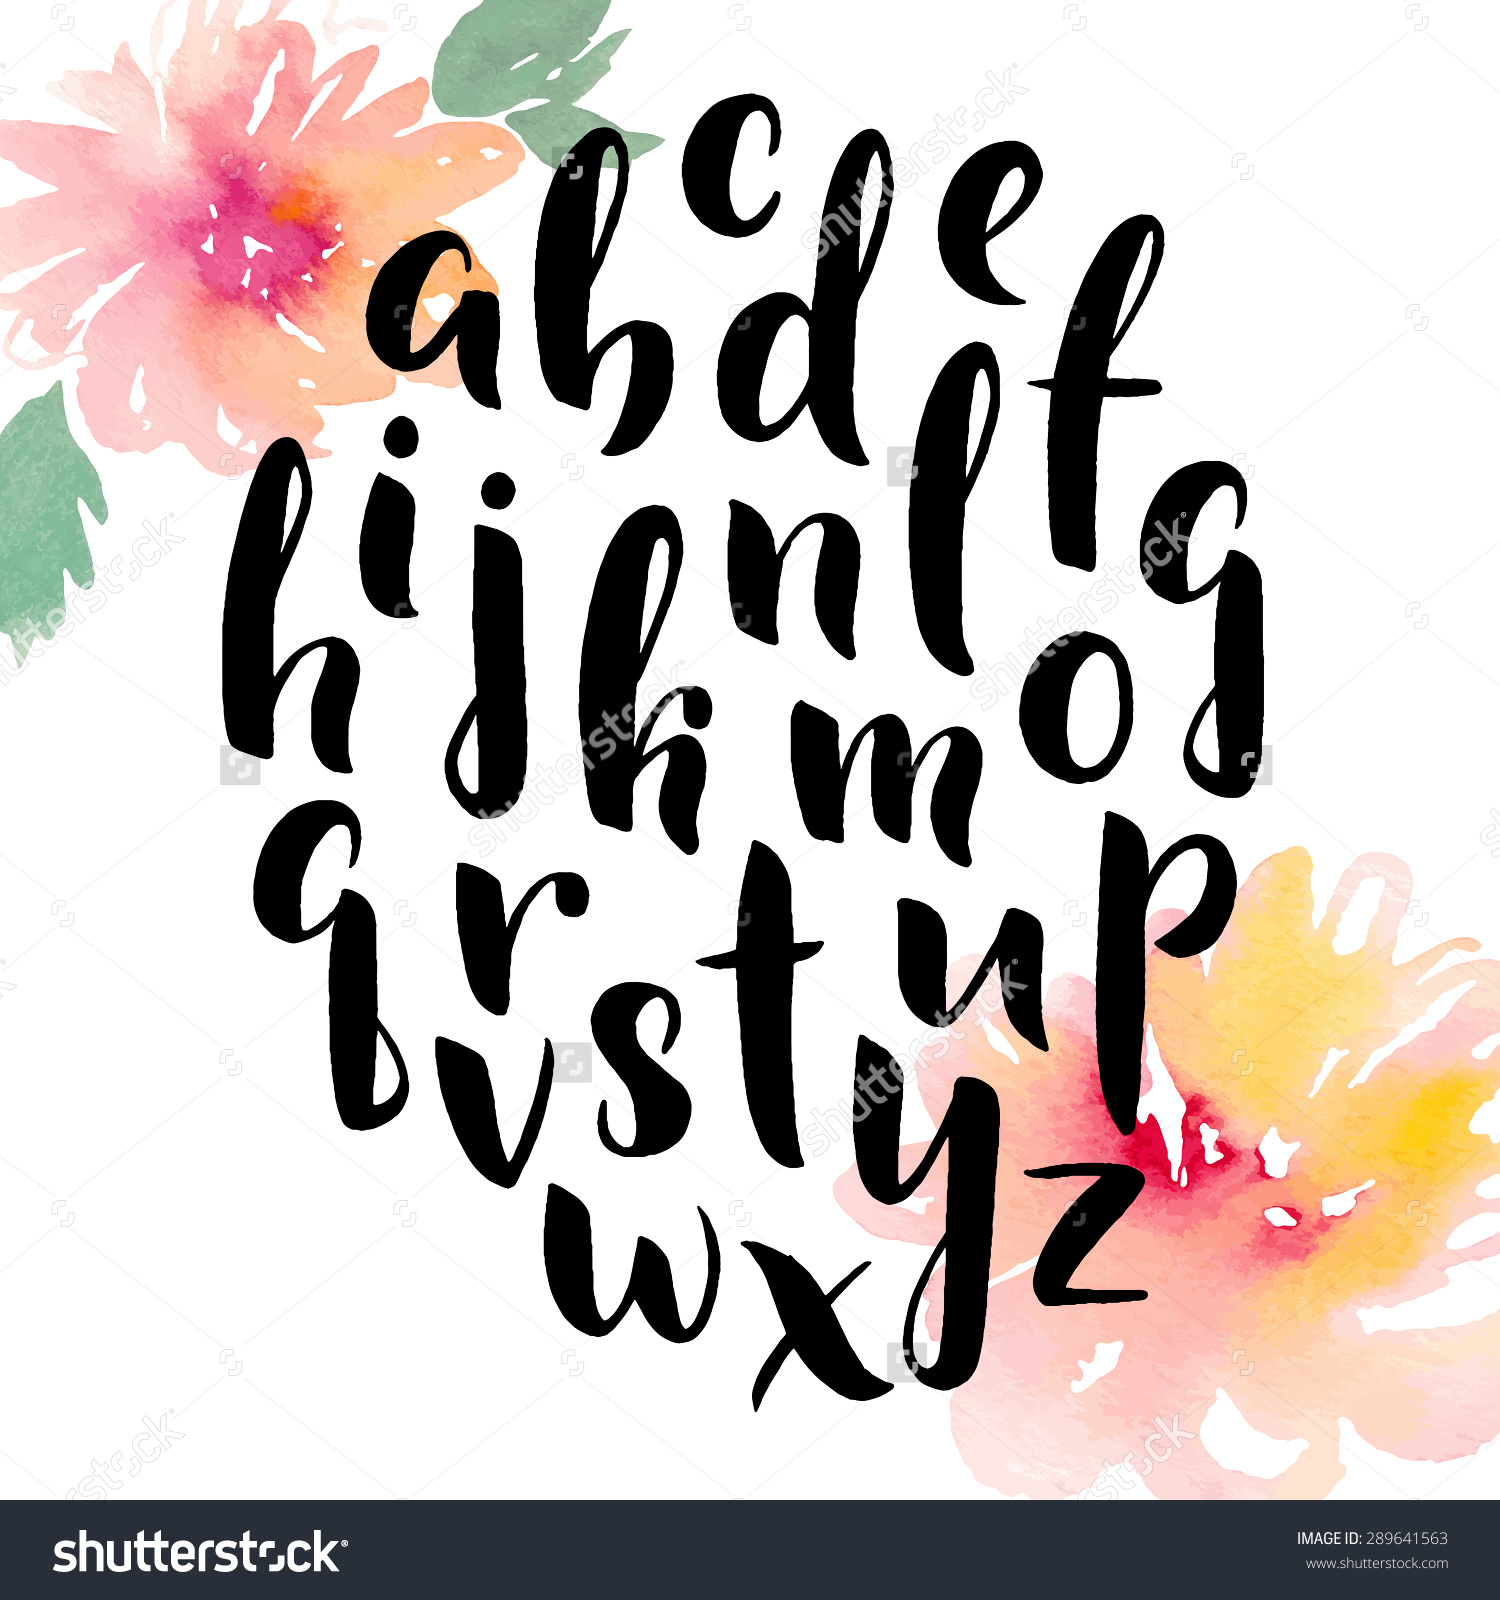 Hand Drawn Alphabet Ink Hand Lettering Stock Vector 289641563.